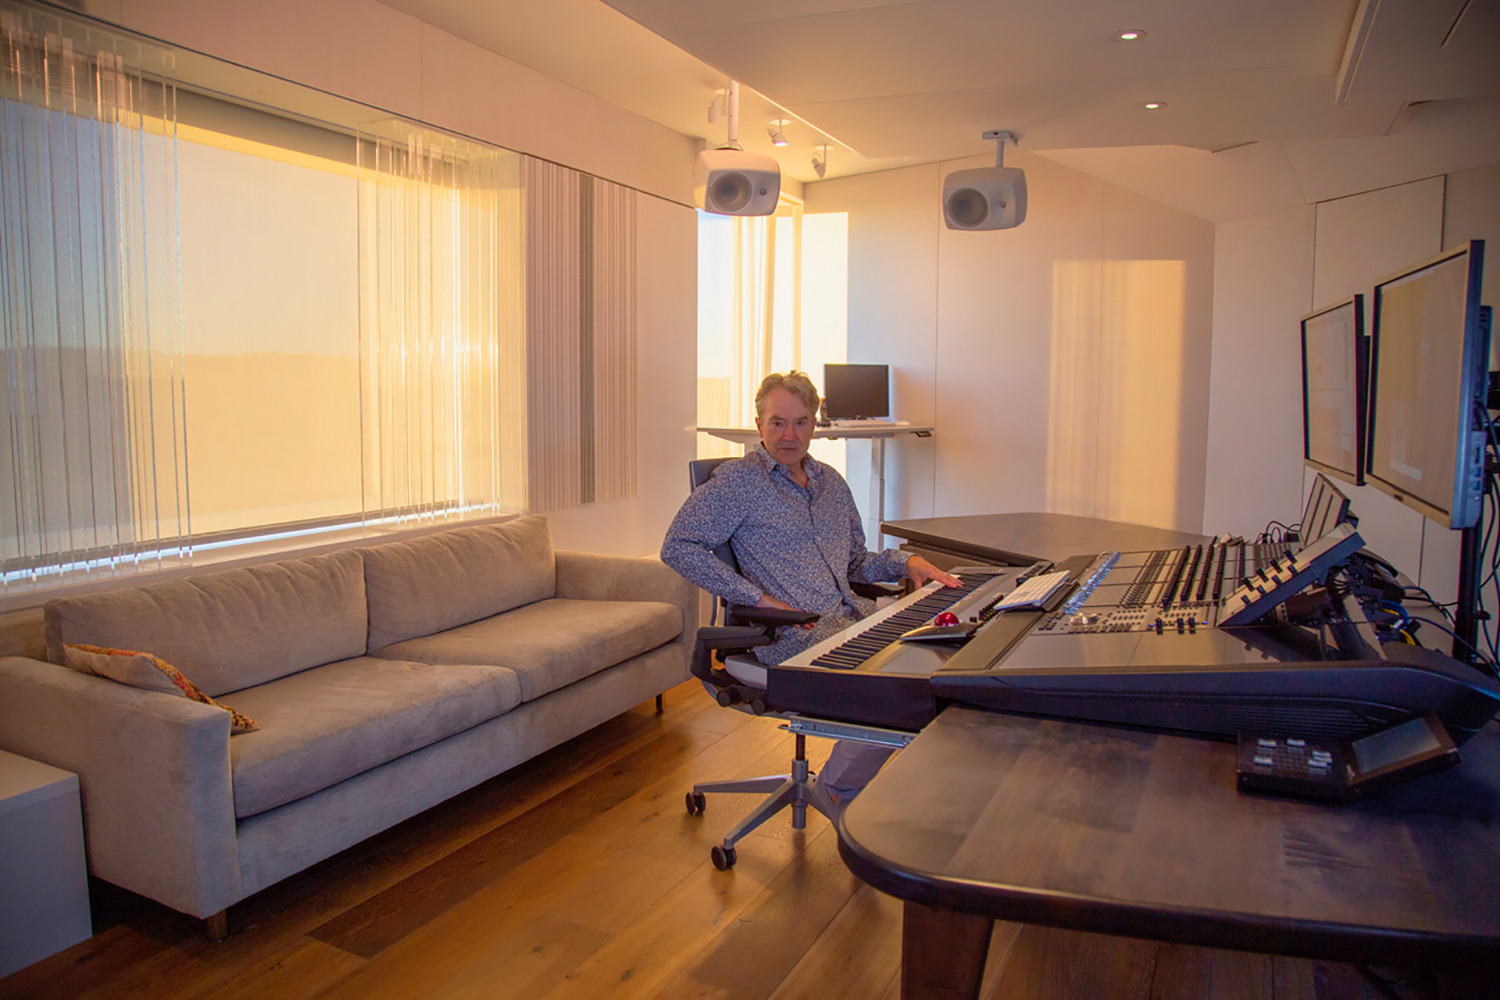 World-renown composer for films Carter Burwell returned to John Storyk and commissioned WSDG a new recording studio at his ultra modern Maziar Behrooz-designed home. Carter in action at his WSDG-designed studio.